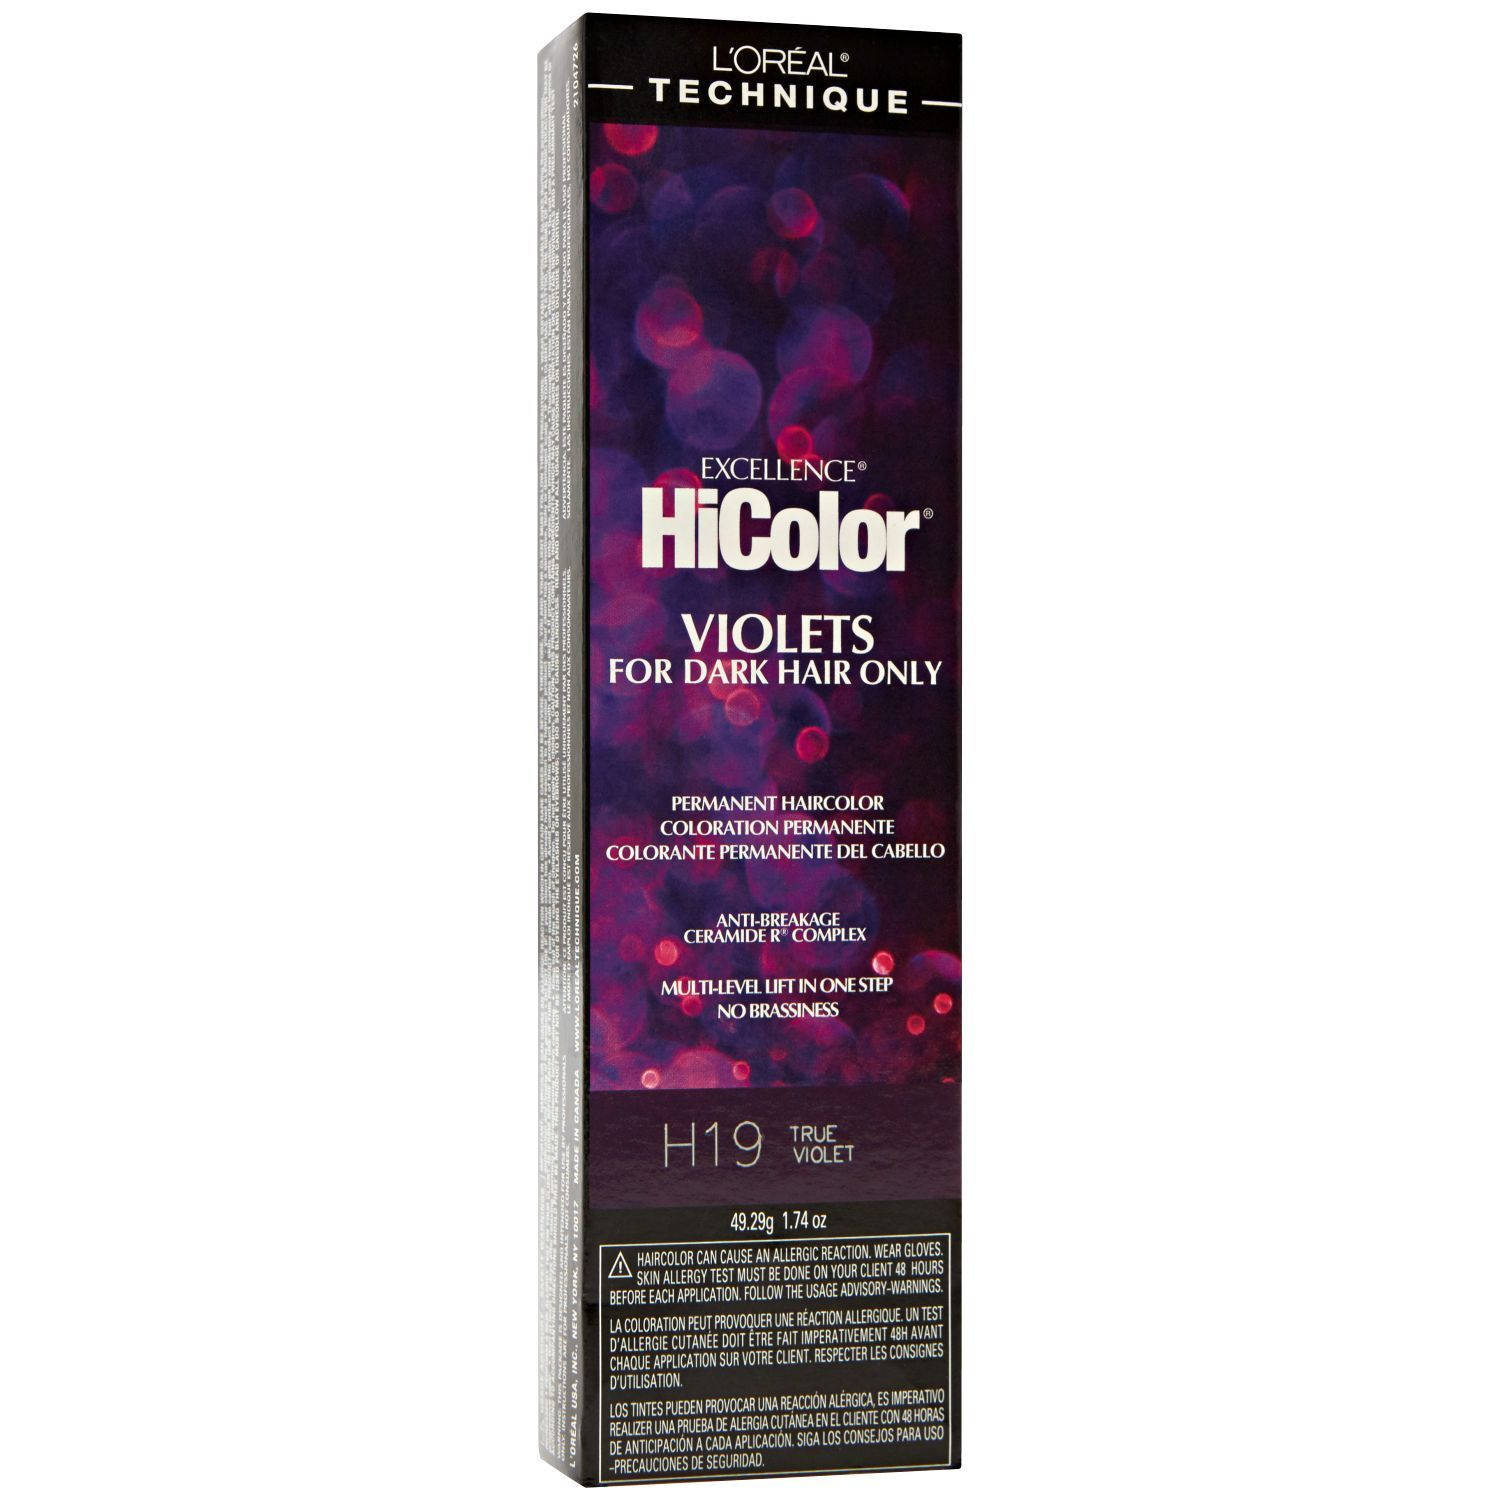 Loreal Technique Excellence Hicolor Violets For Dark Hair Only